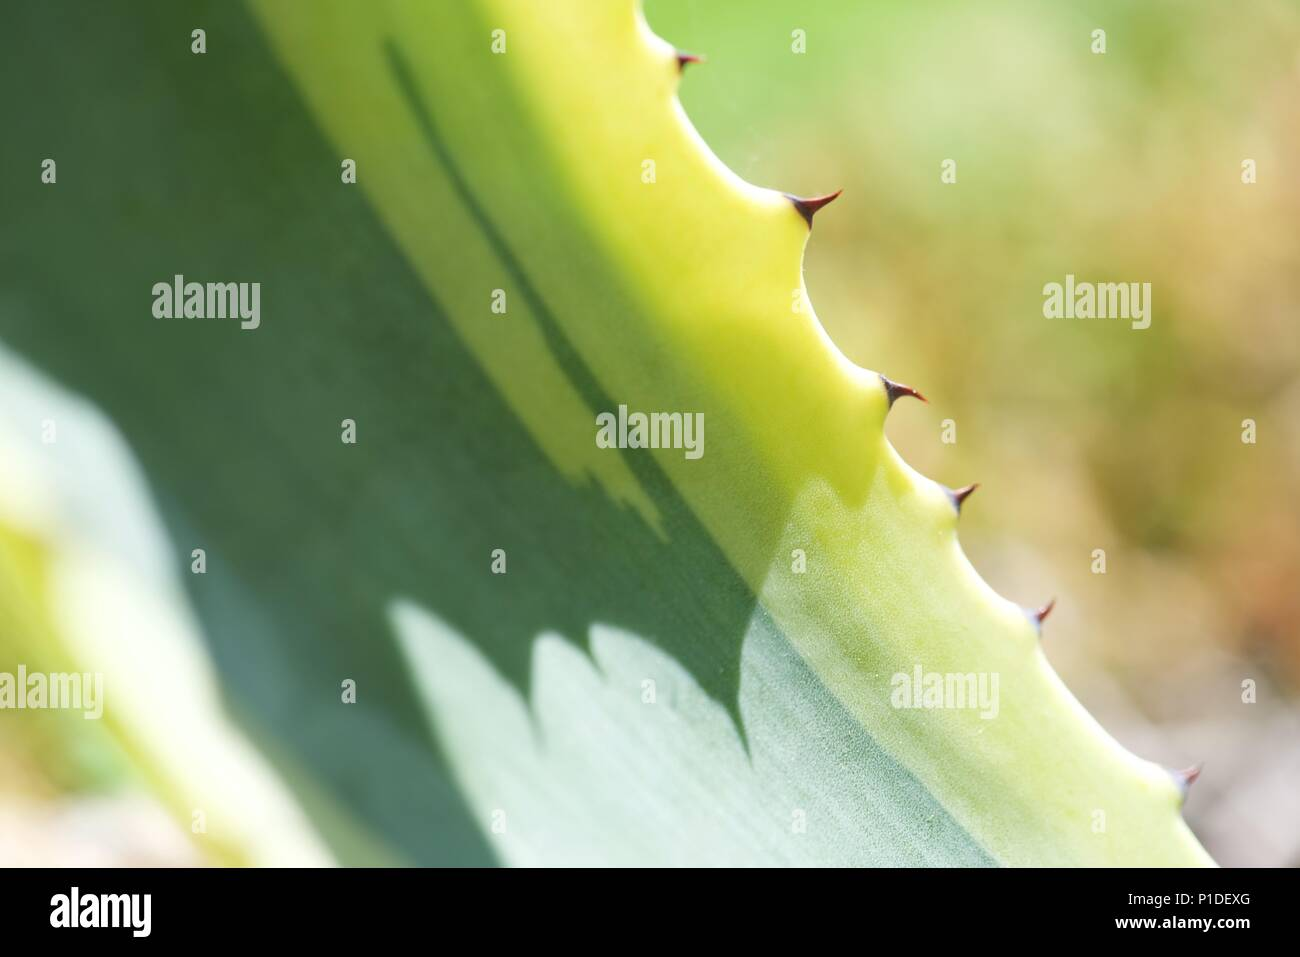 Agave americana variegata: a detail of one leaf of an Agave plant - Stock Image